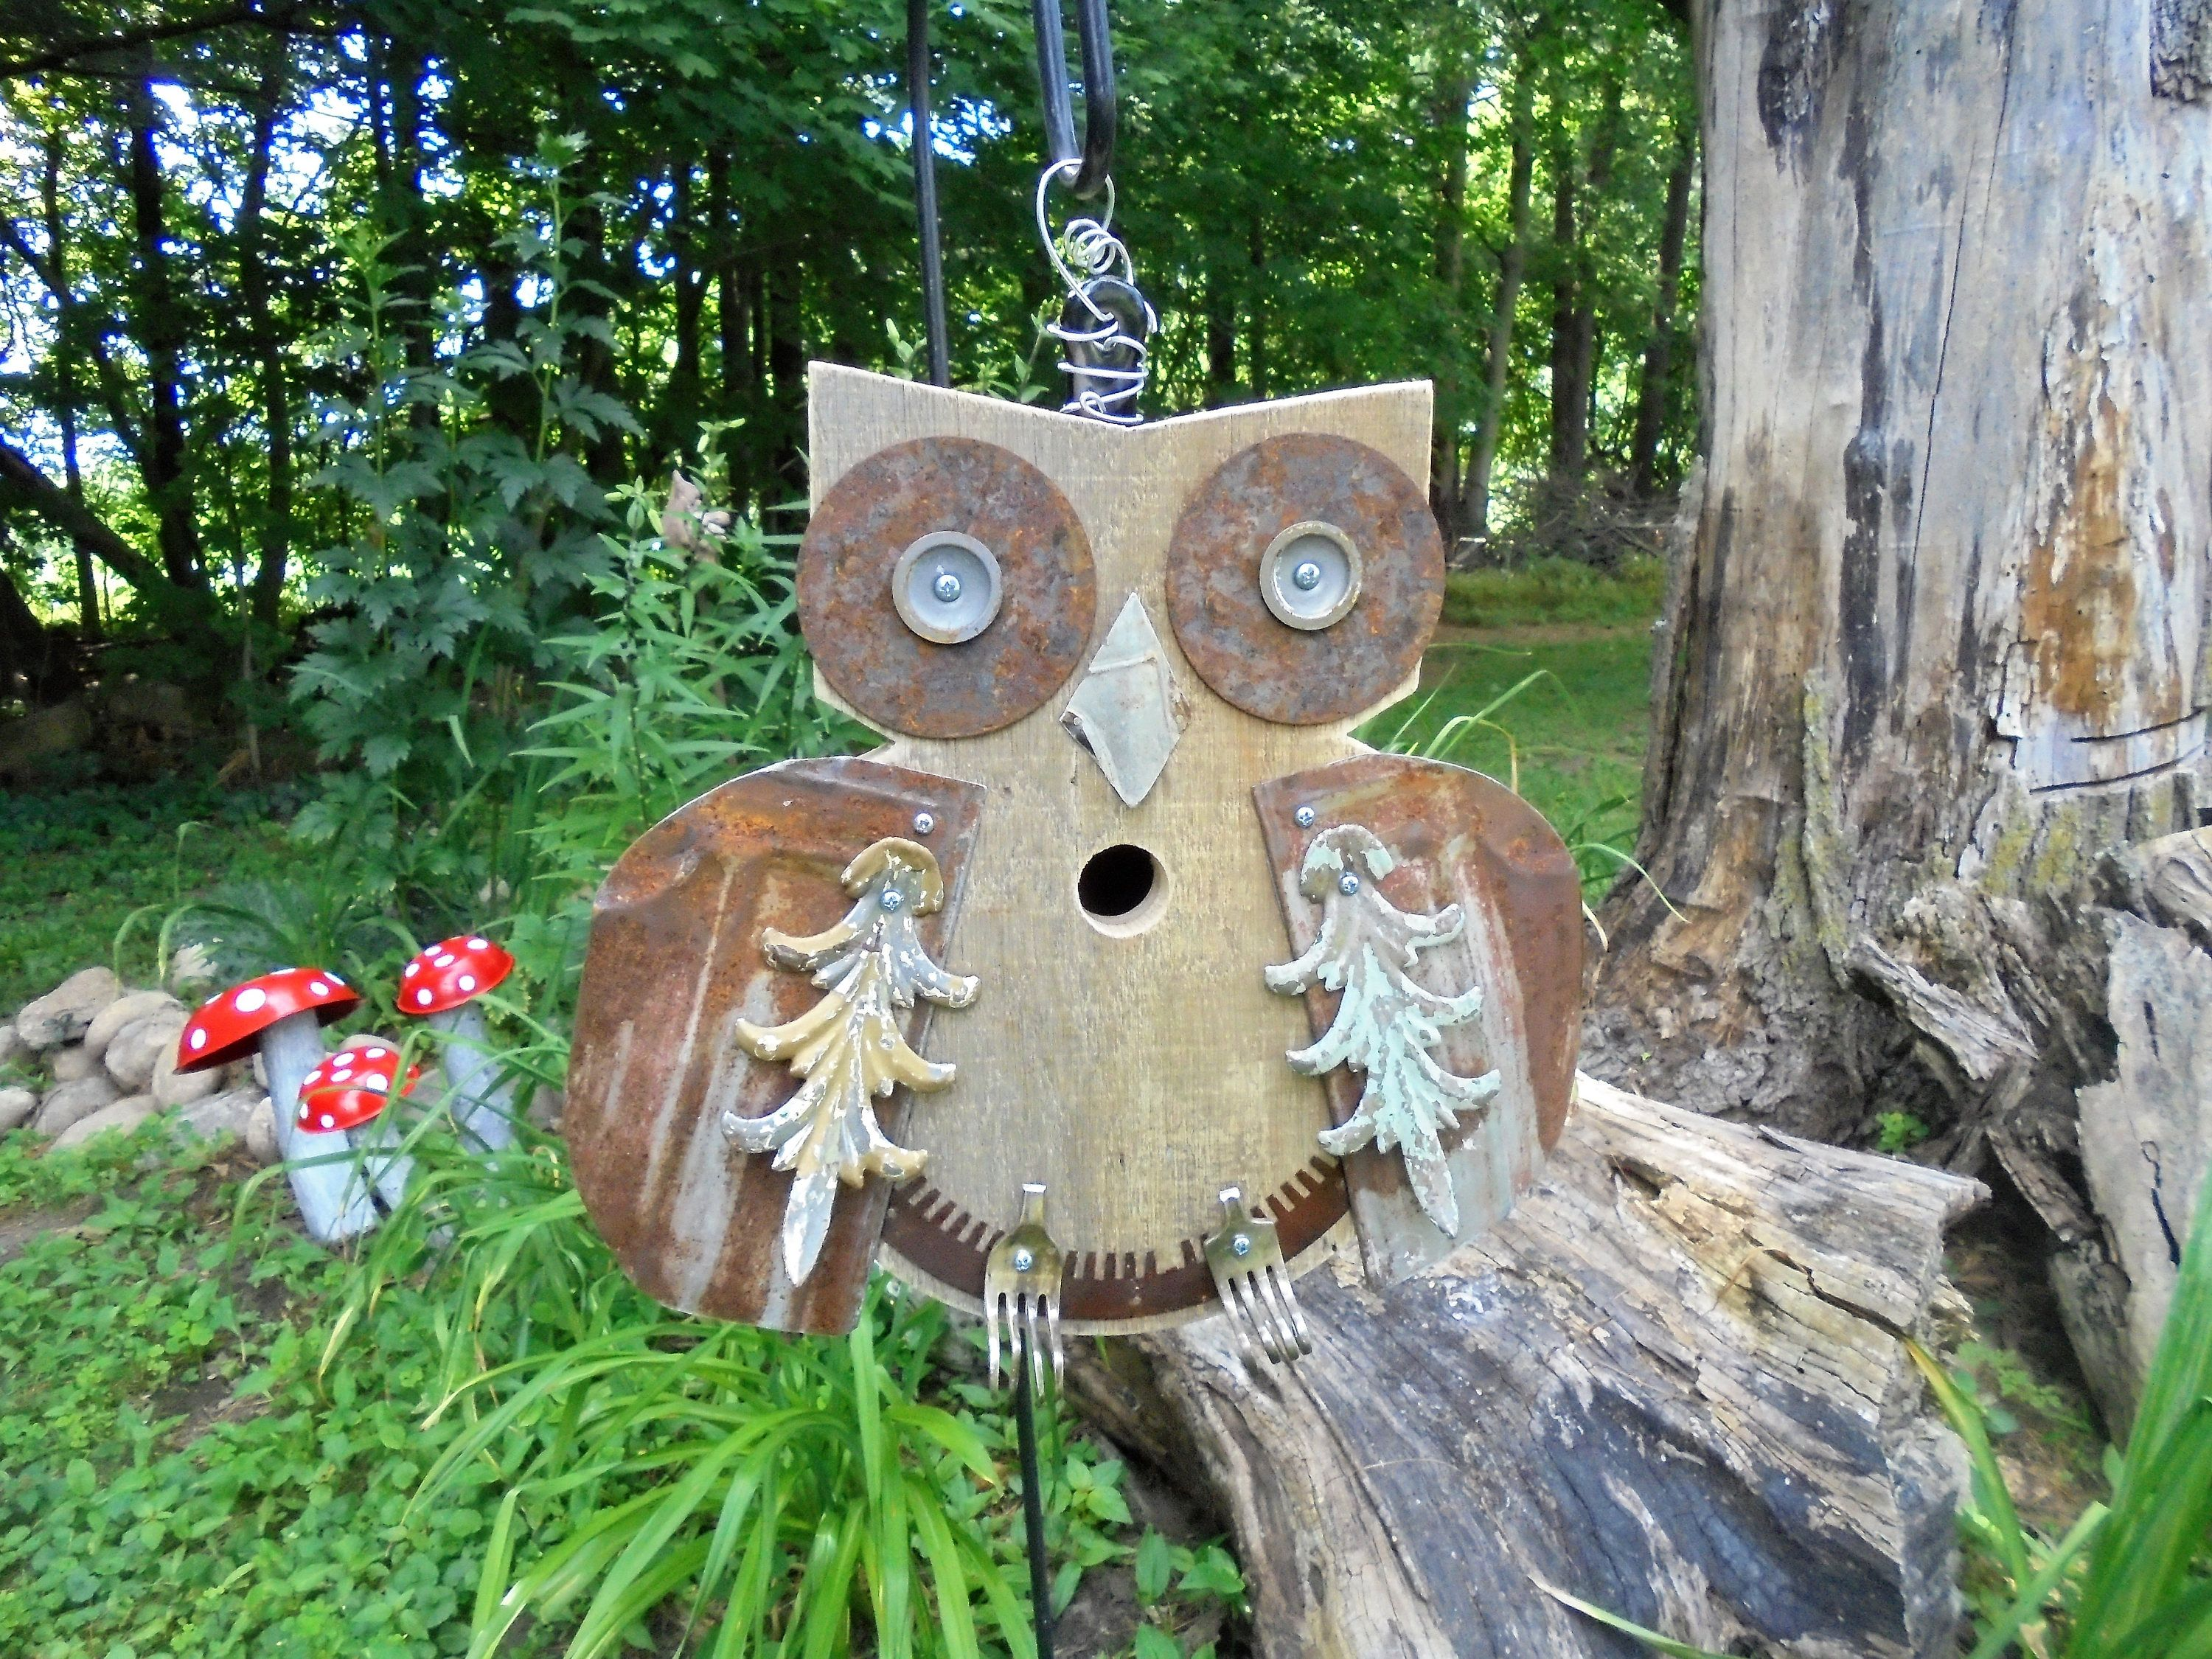 OOAK Rustic Birdhouse, Owl Assemblage Birdhouse,Mixed Media Upcycled ...